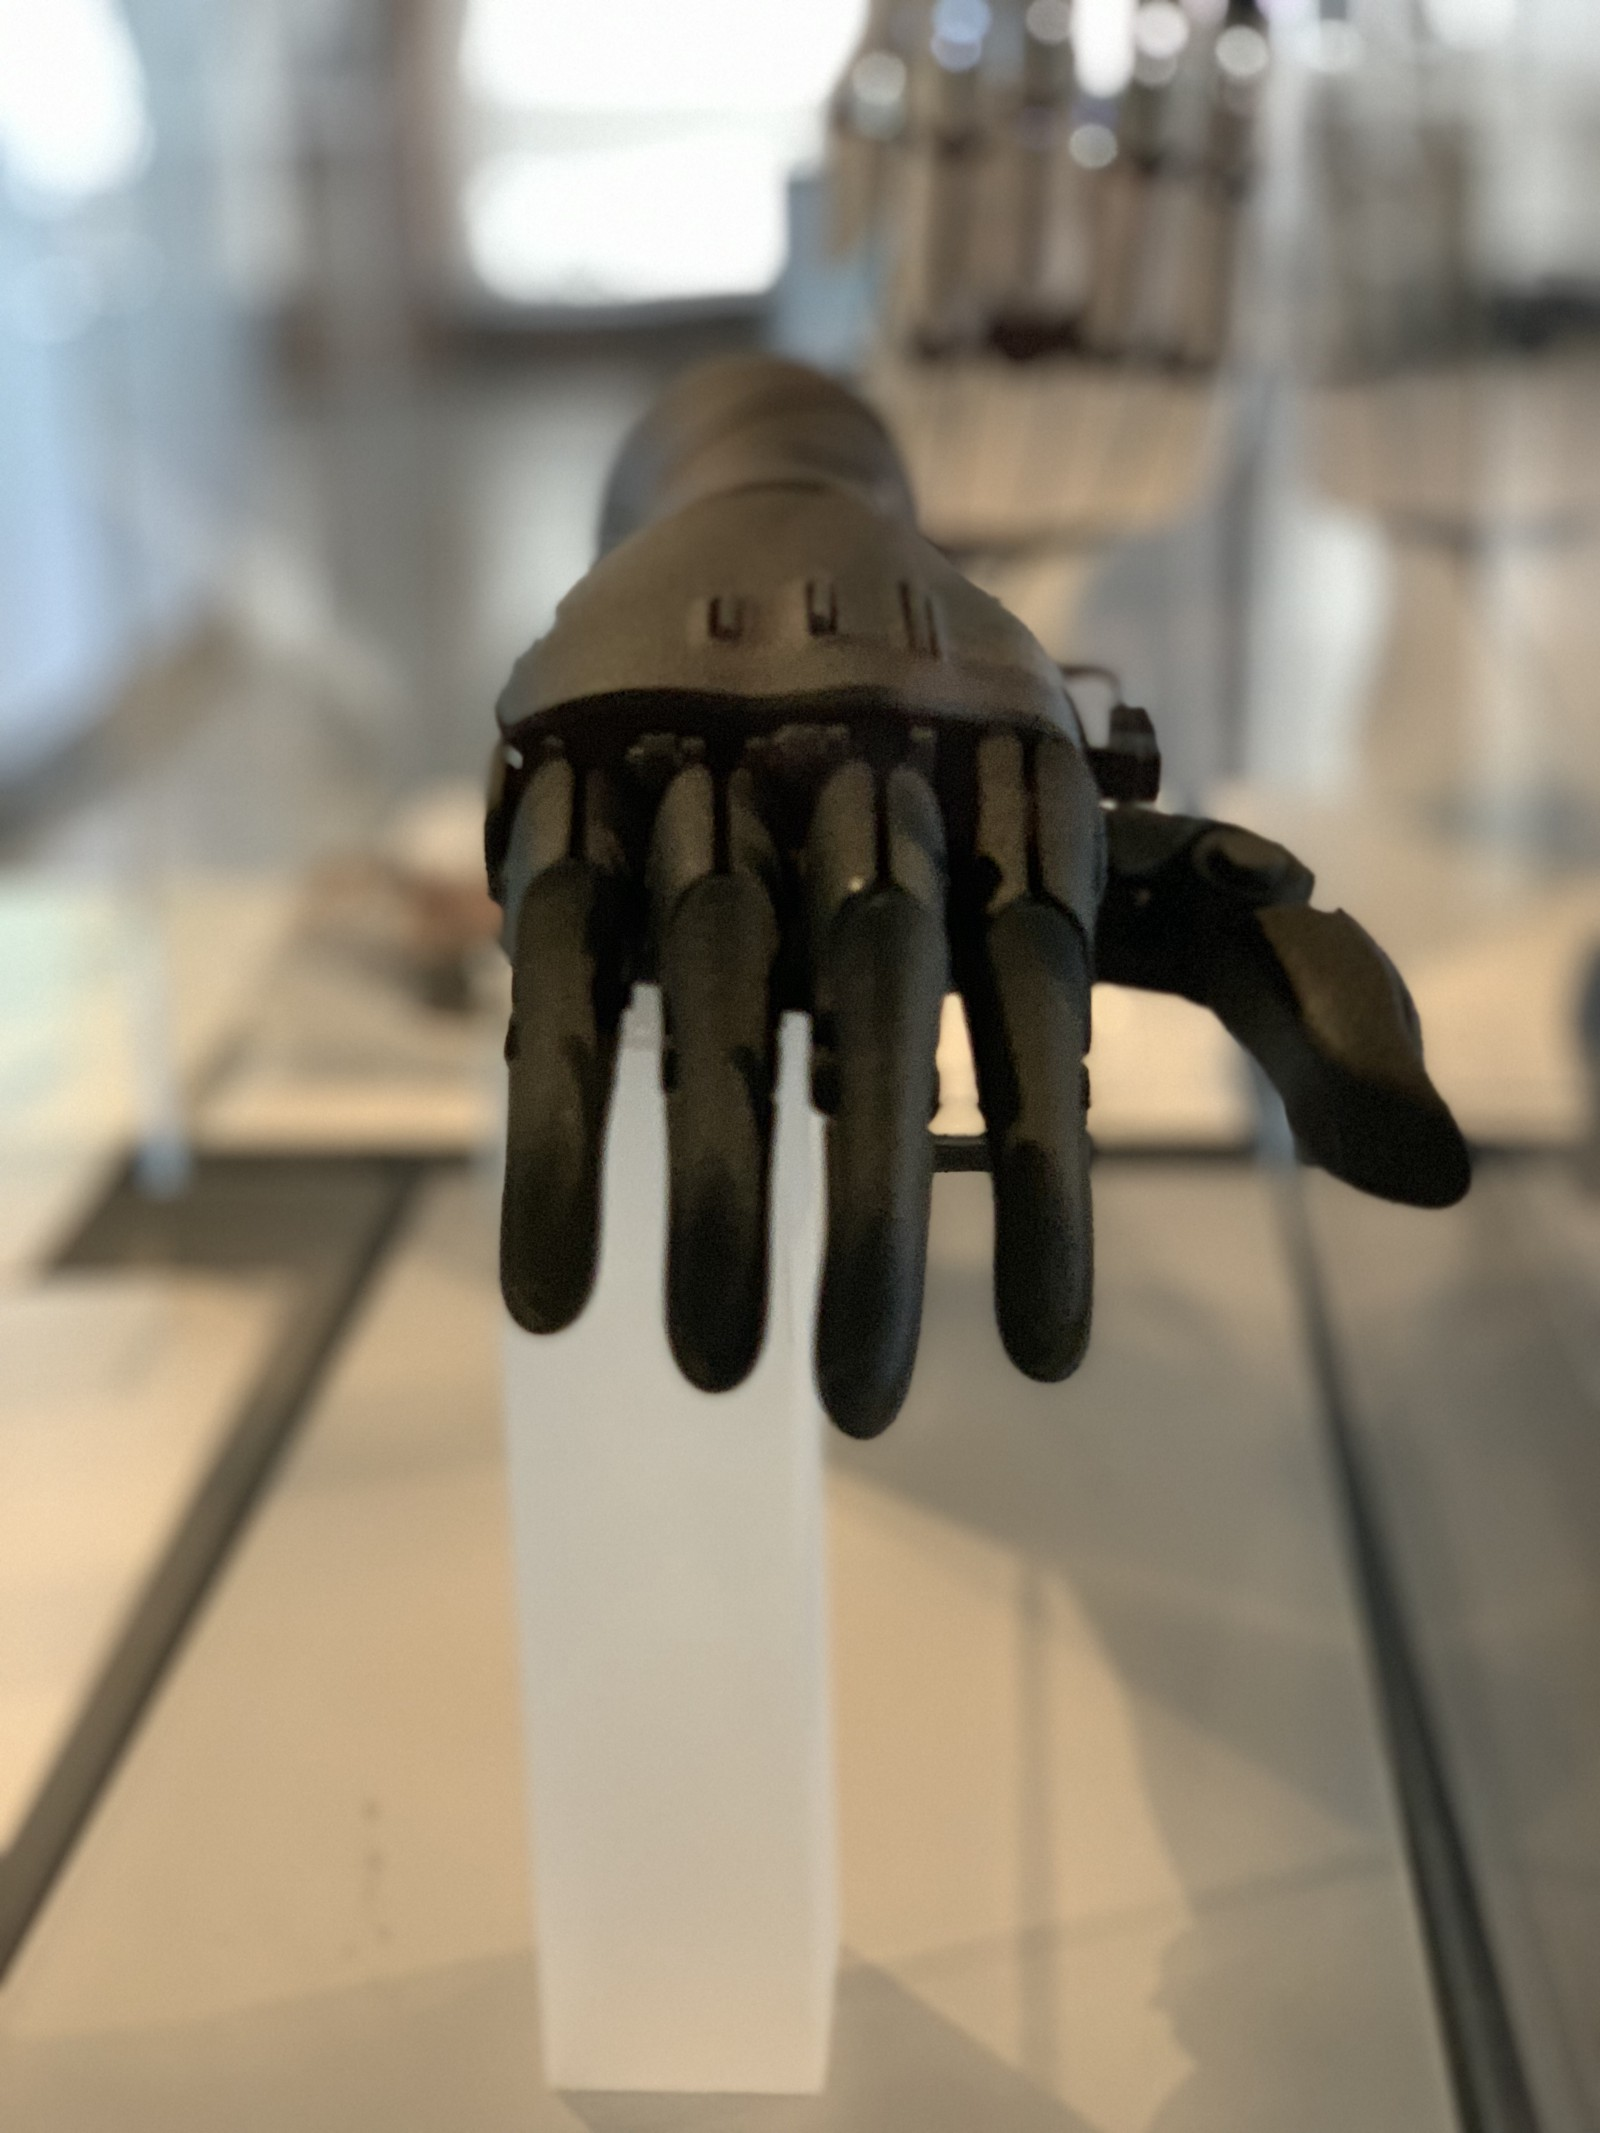 3D printed prosthesis at Autodesk